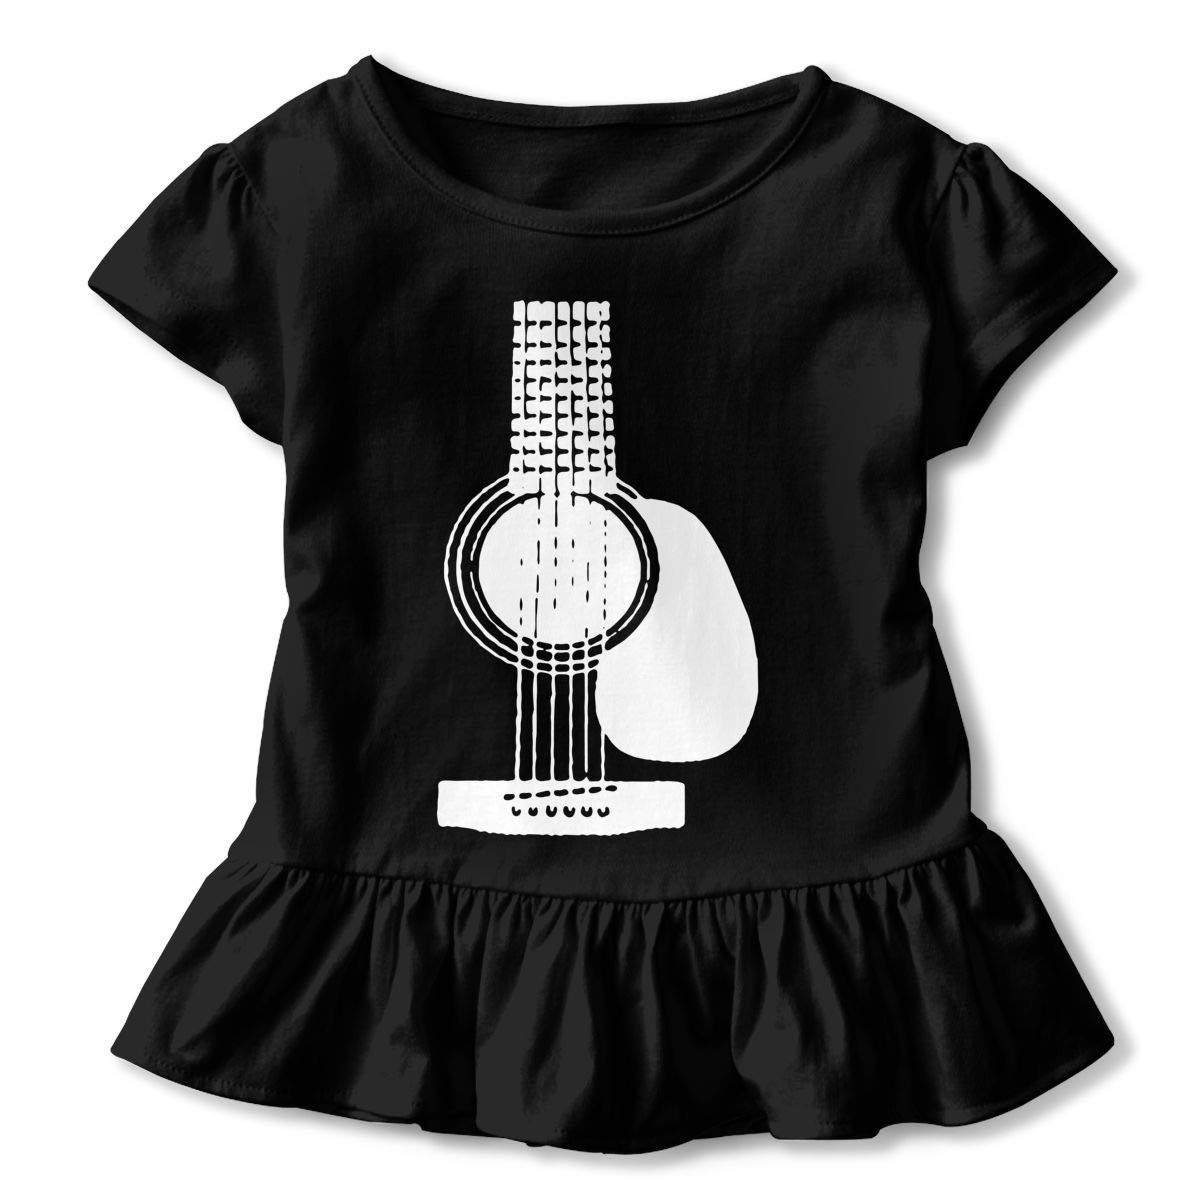 Acoustic Guitars Kids Girls Short Sleeve T-Shirts Ruffles Shirt Tee for 2-6T